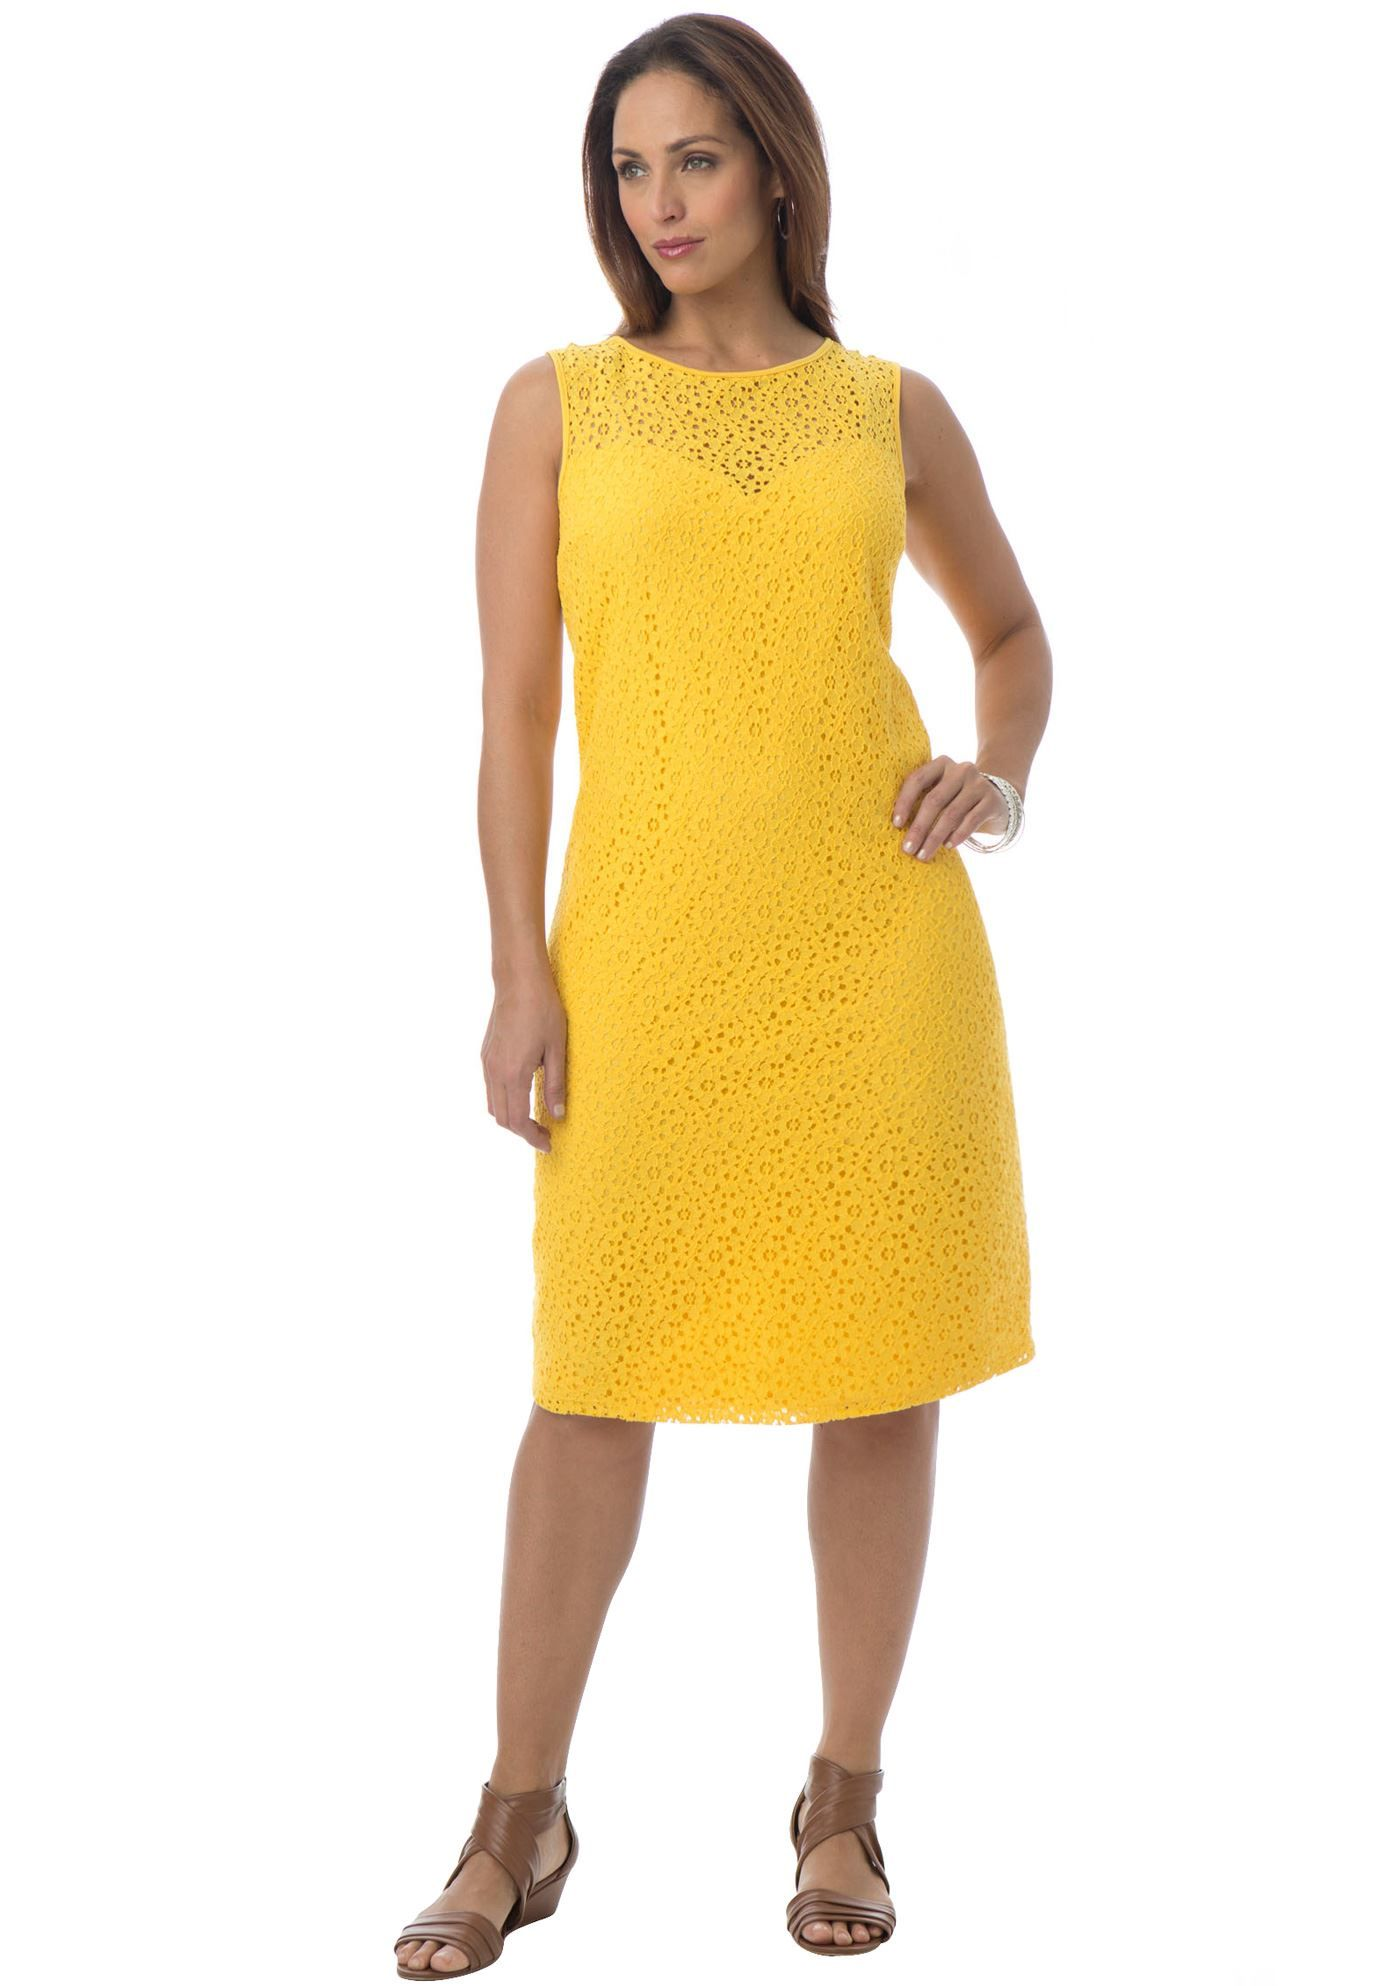 lovely sleeveless plus size lace dress in a sophisticated sheath